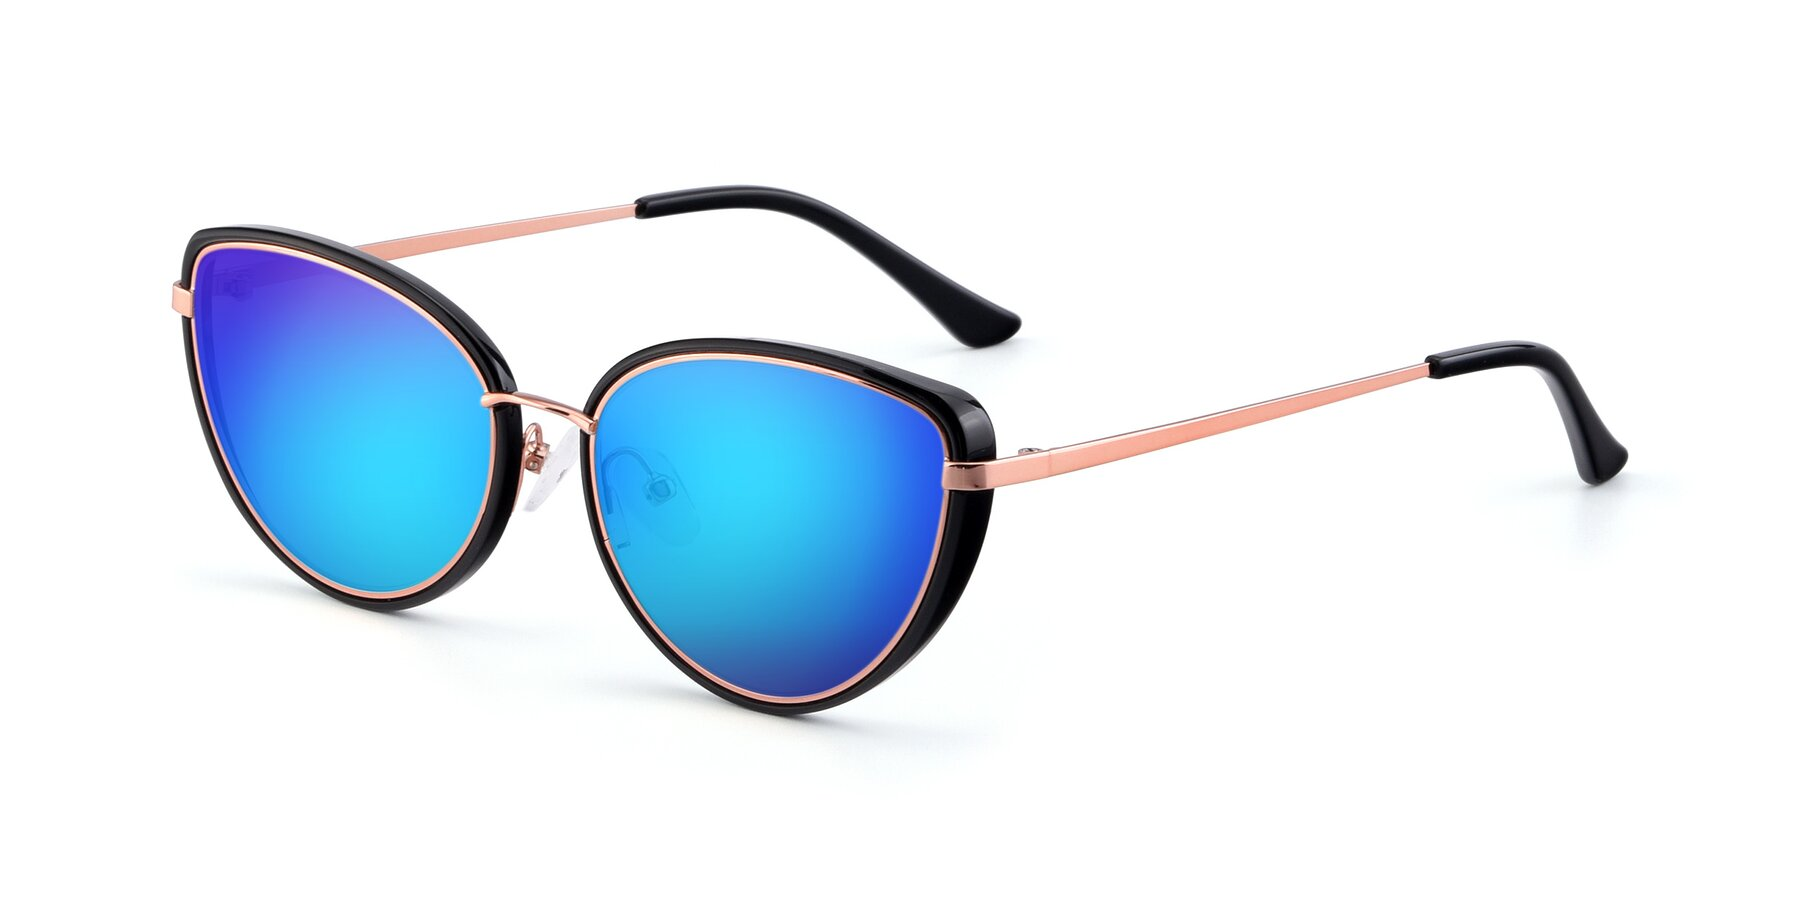 Angle of 17706 in Black-Rose Gold with Blue Mirrored Lenses